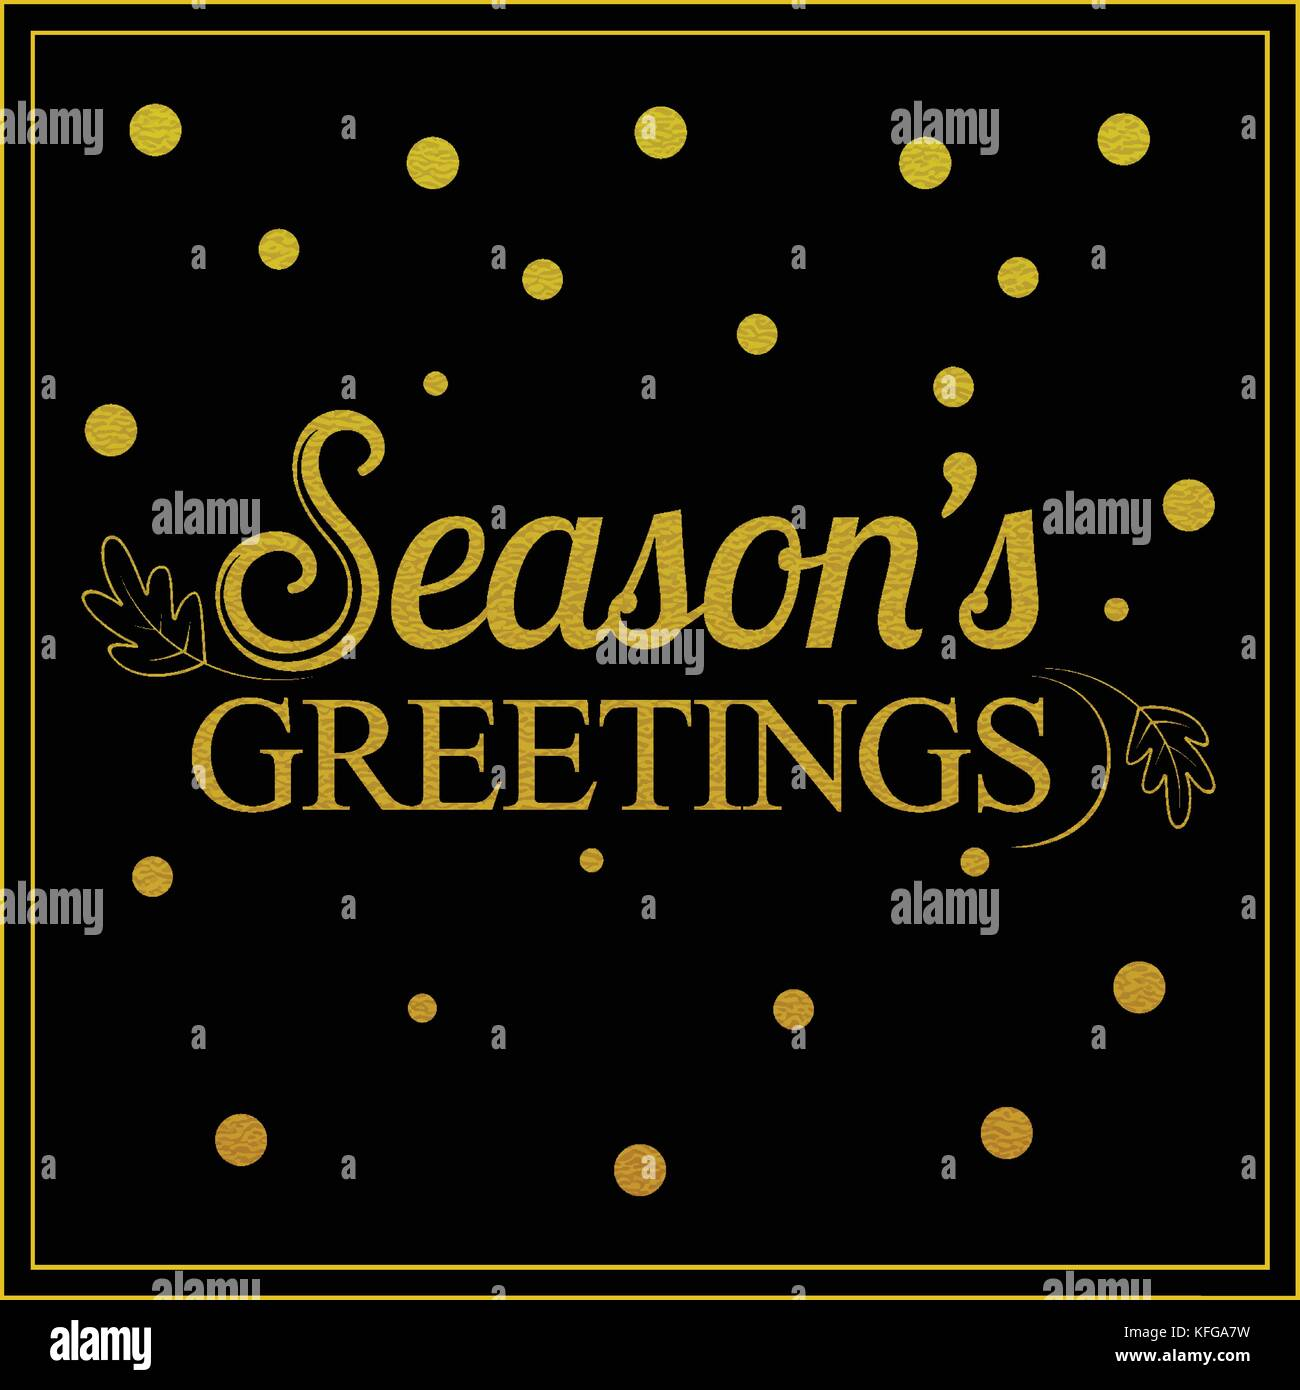 Greetings Card Stock Vector Images Alamy